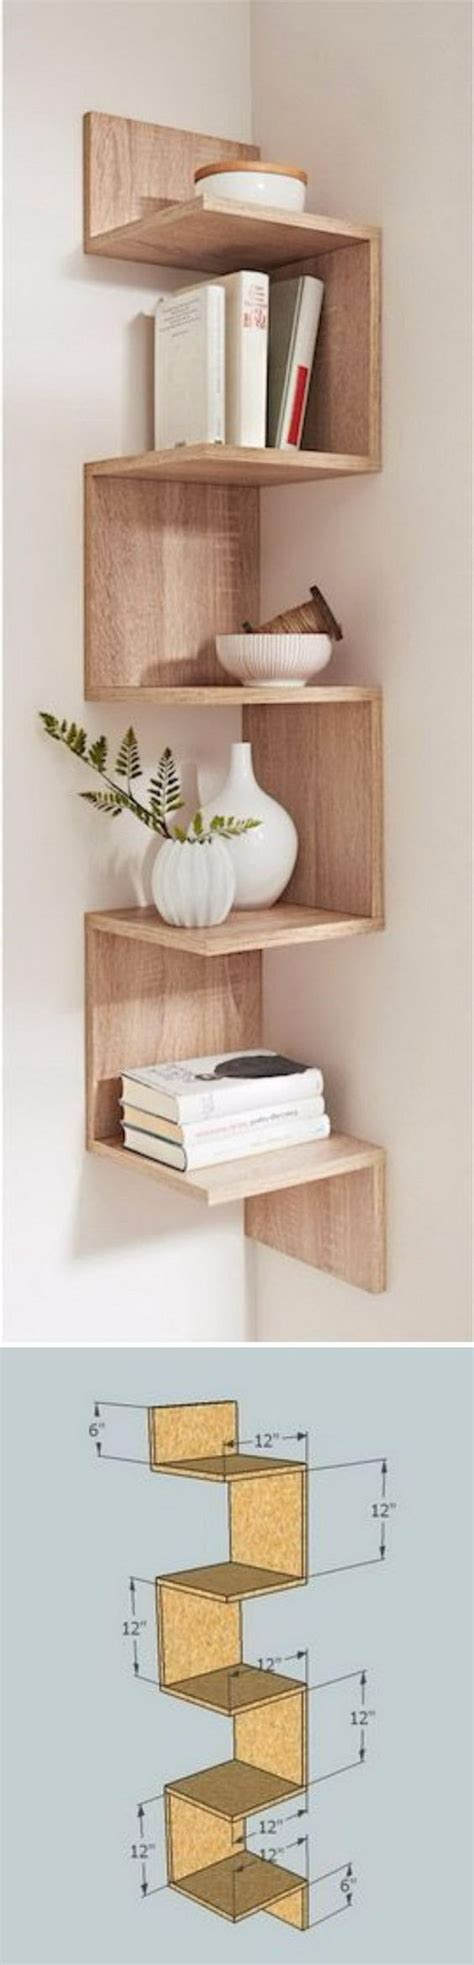 kitchen bookshelf ideas best 25 shelving ideas ideas on shelves open